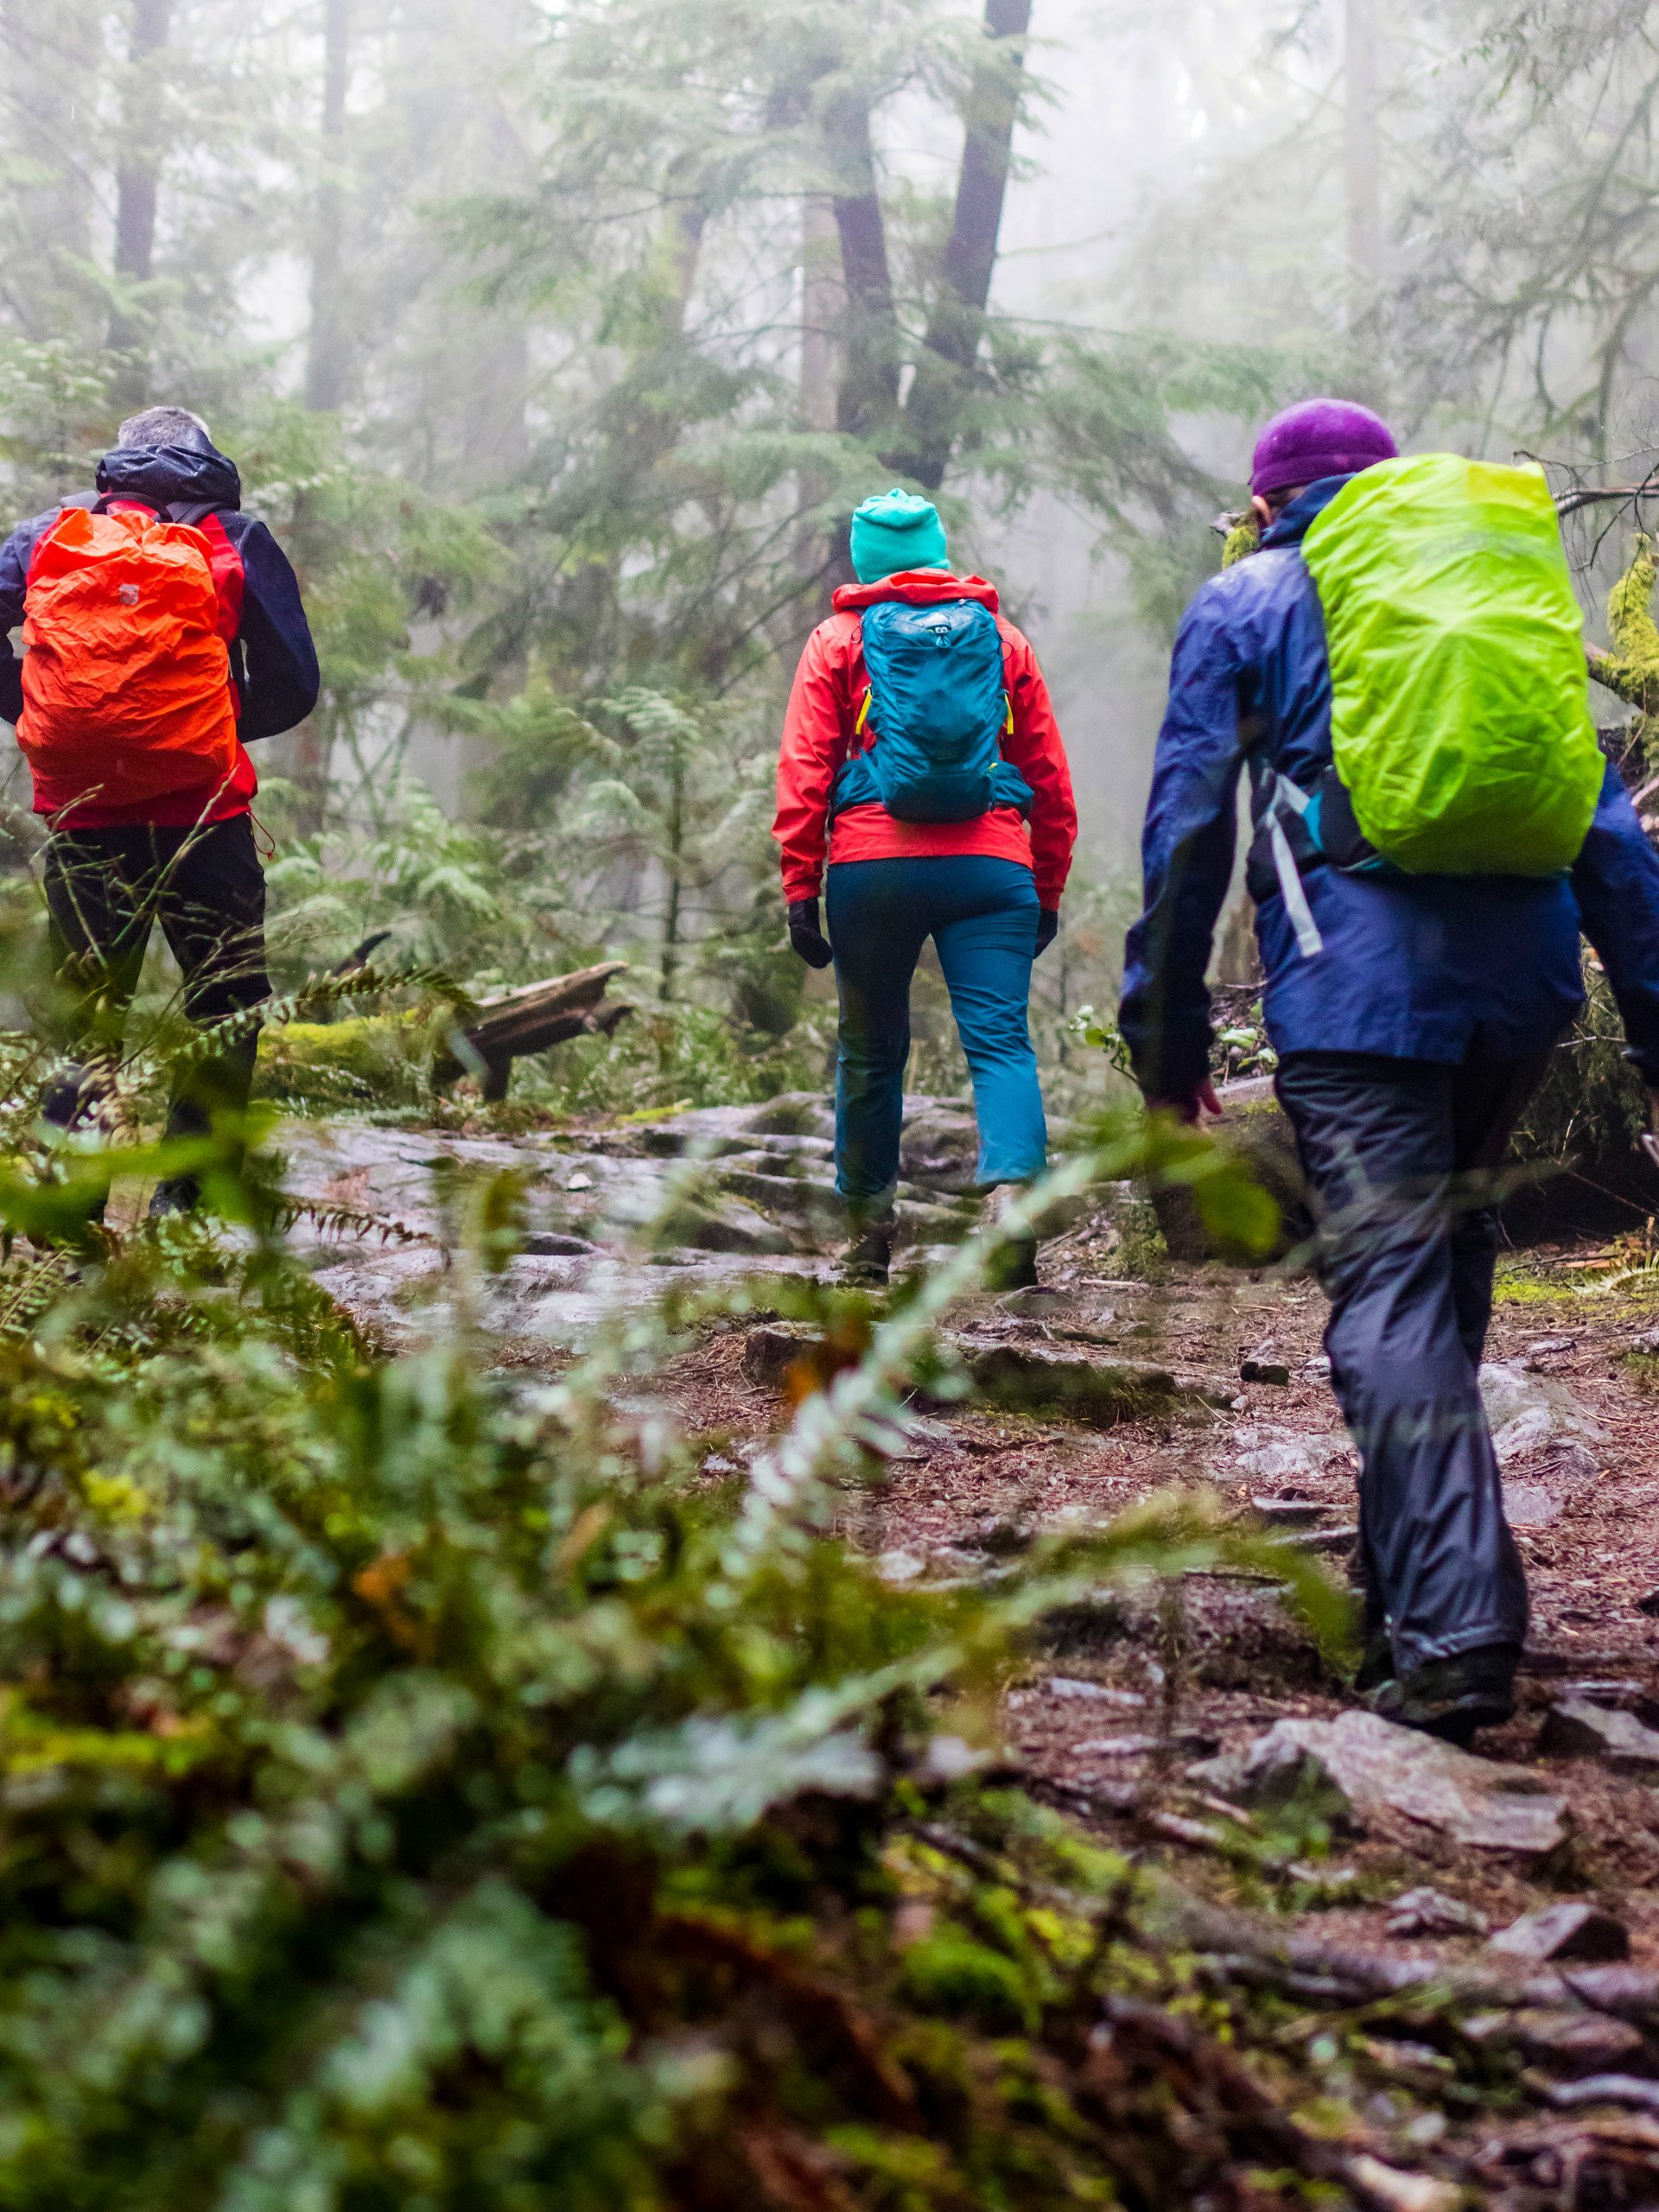 Trekking group backpackers walking through misty foggy forest